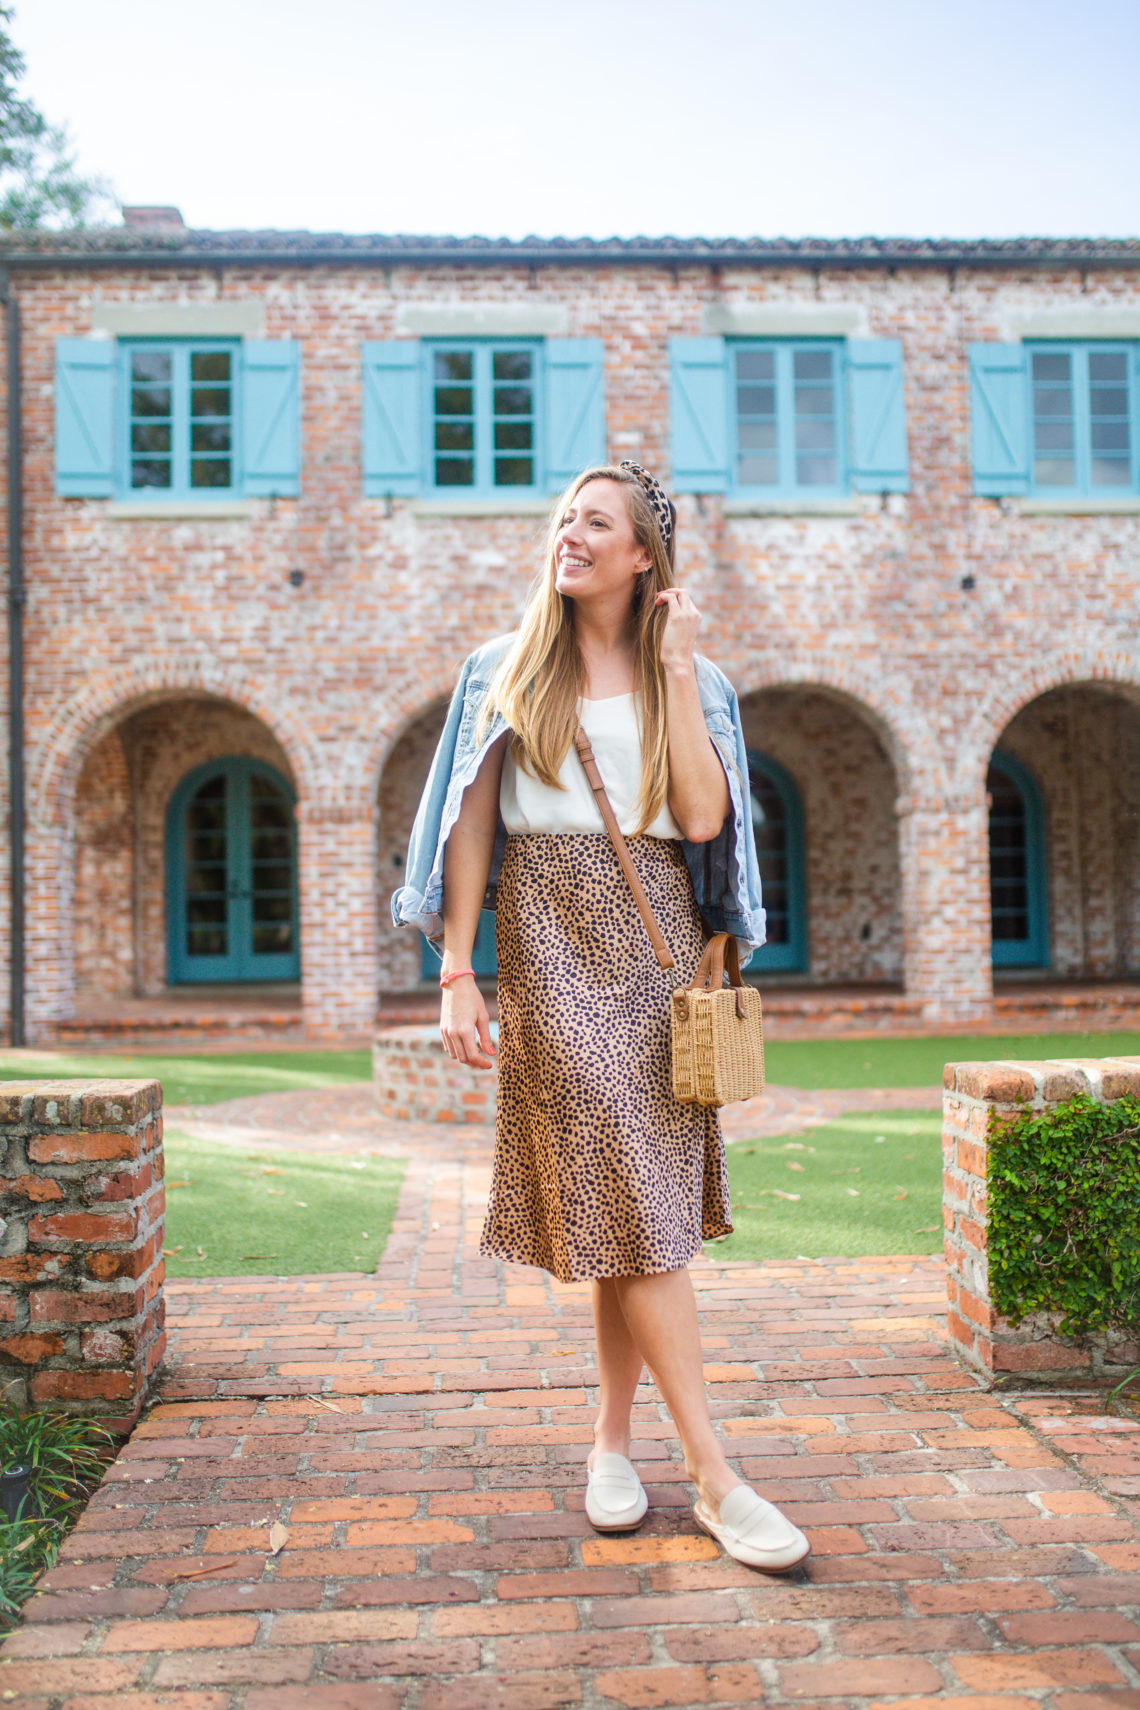 How to Style a Leopard Skirt / What to Wear for a Casual Weekend Outfit /How to Style a Leopard Skirt Casually / How to Style a Midi Skirt - Sunshine Style - A Florida based Fashion blog